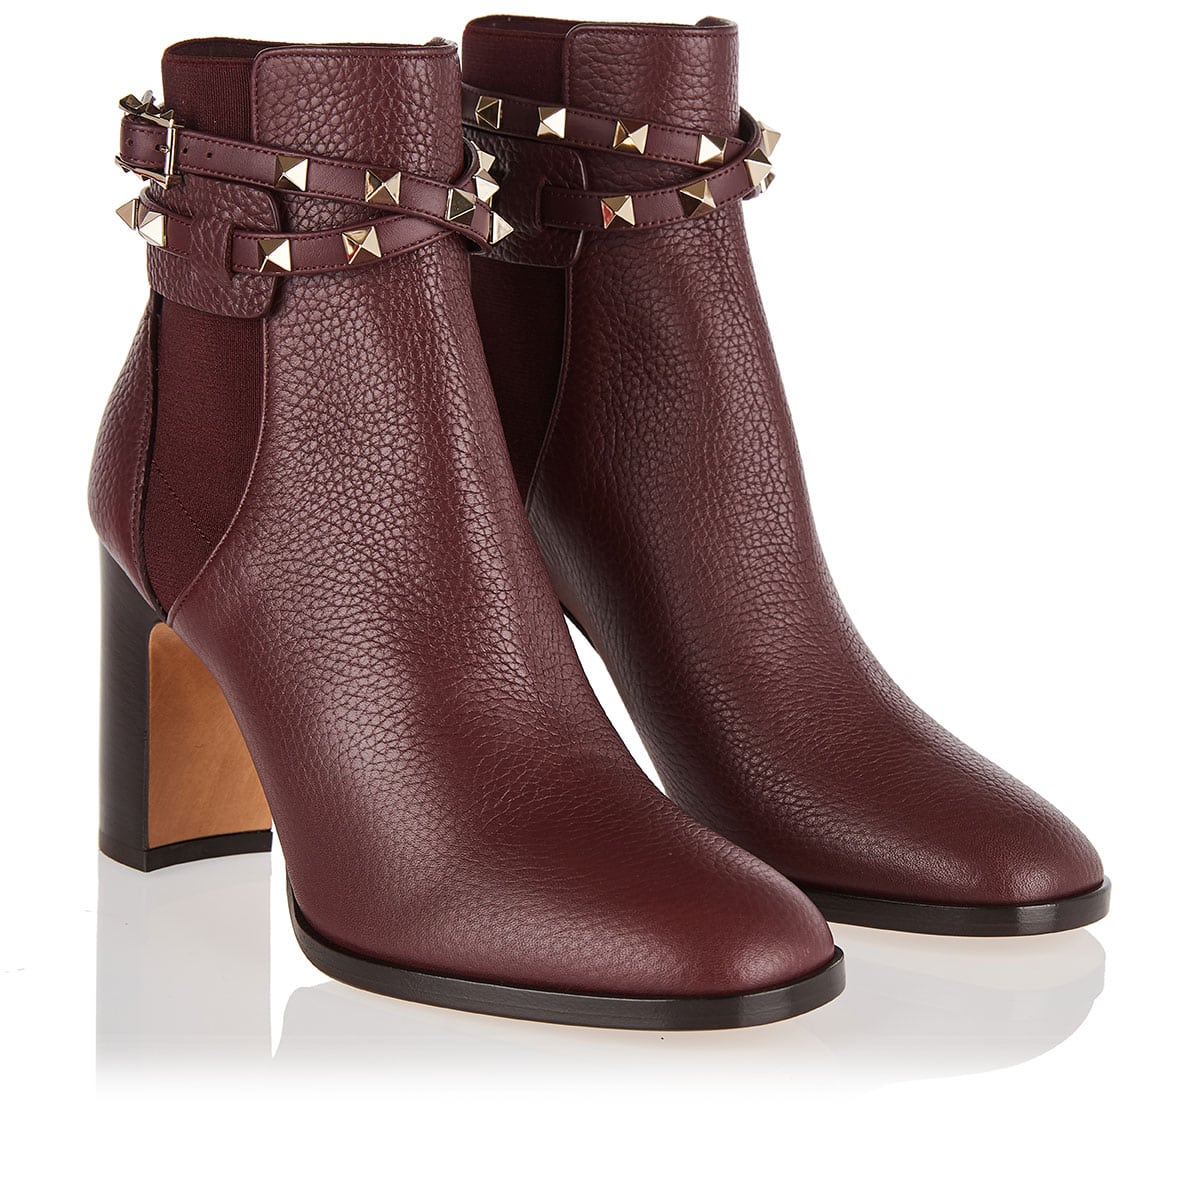 Rockstud leather ankle boots